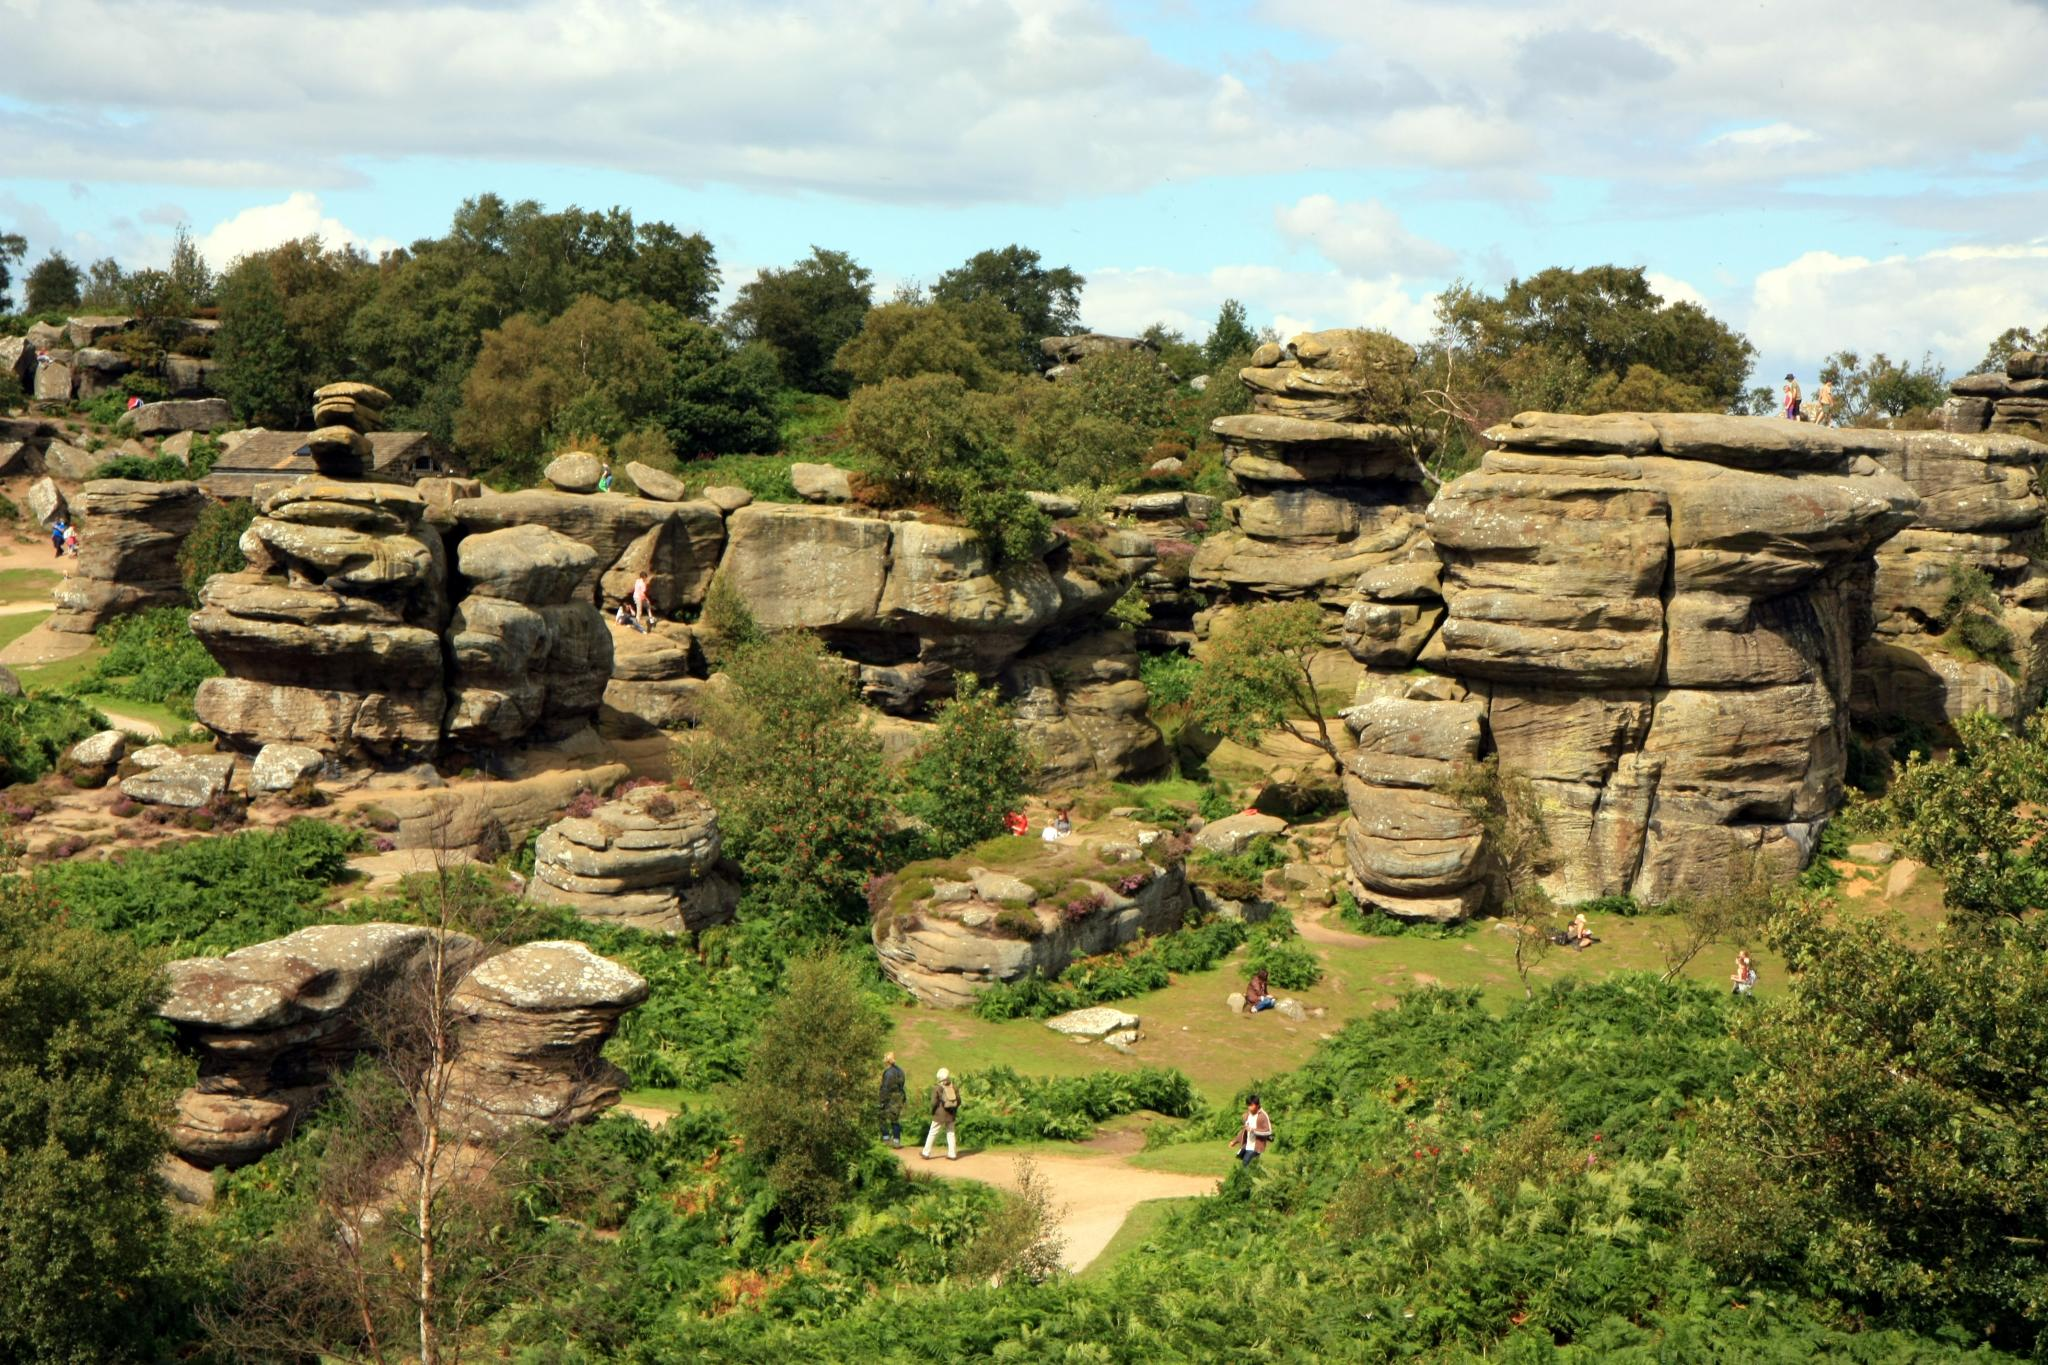 Yorkshire Day: Our guide to the best days out in England's largest county